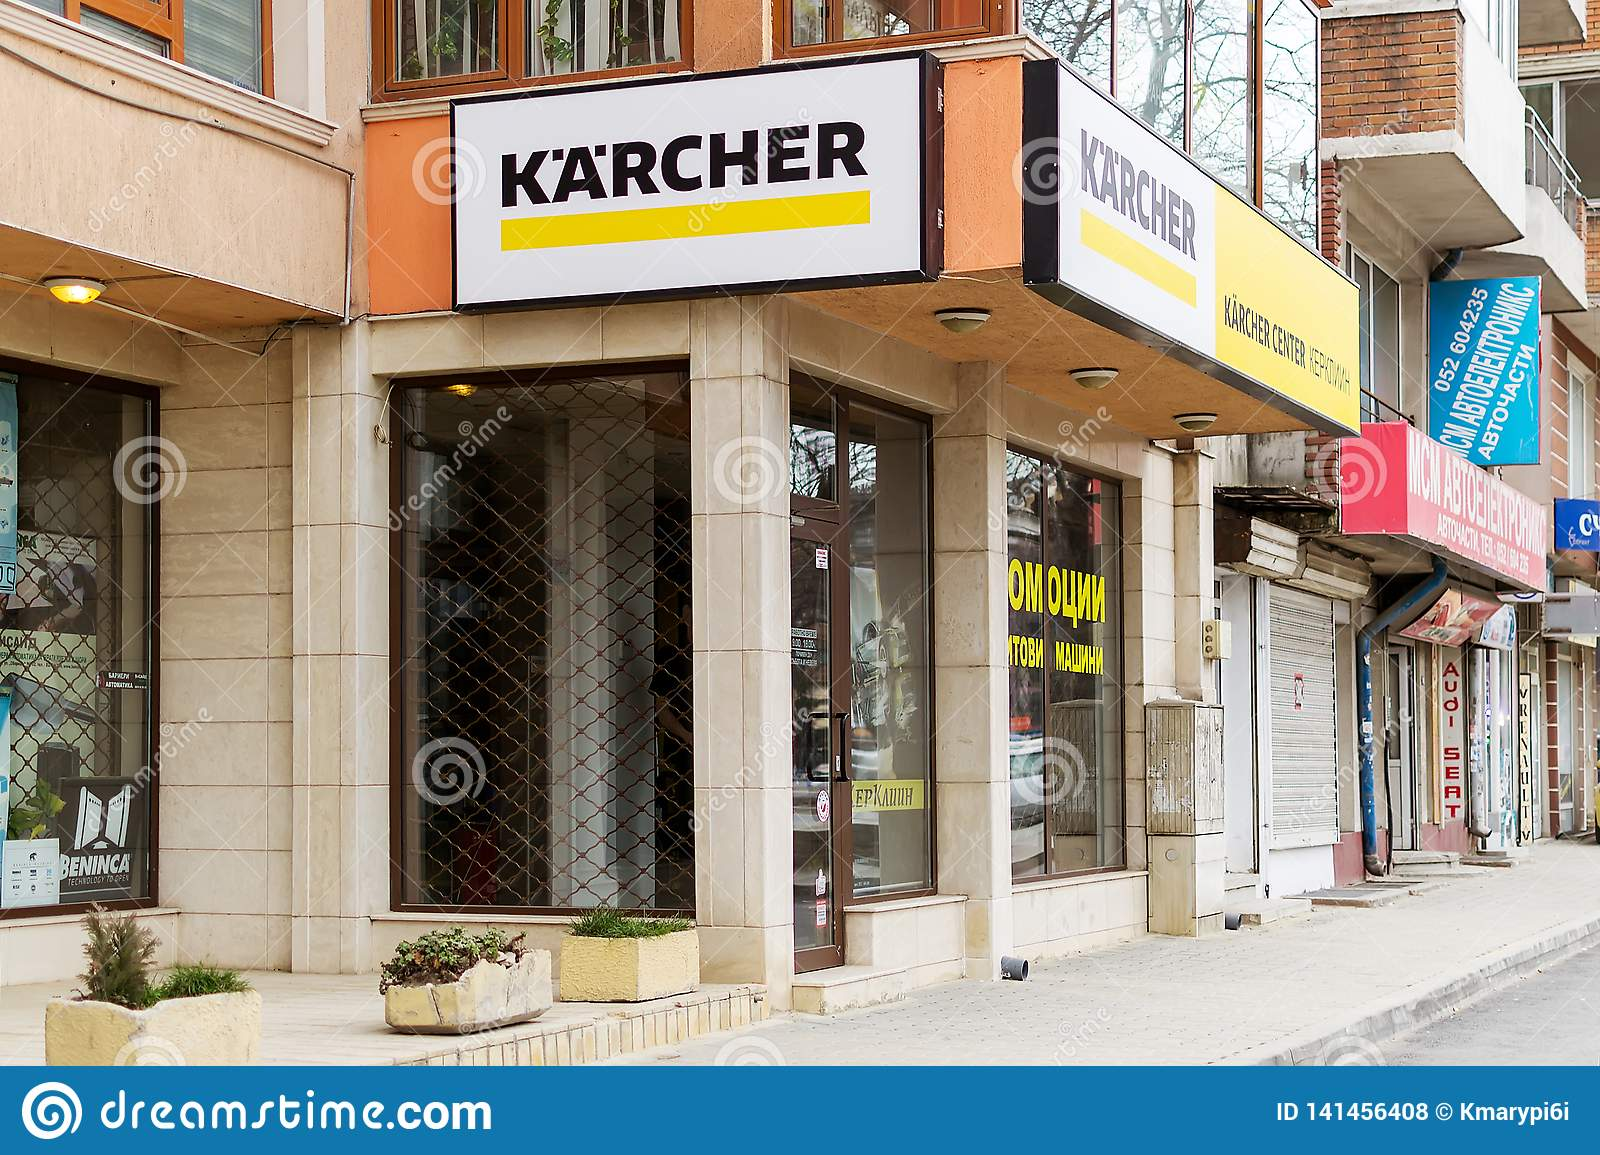 Karcher signboard above the brand shop and service center in Varna, view from the street. Karcher produces equipment for high